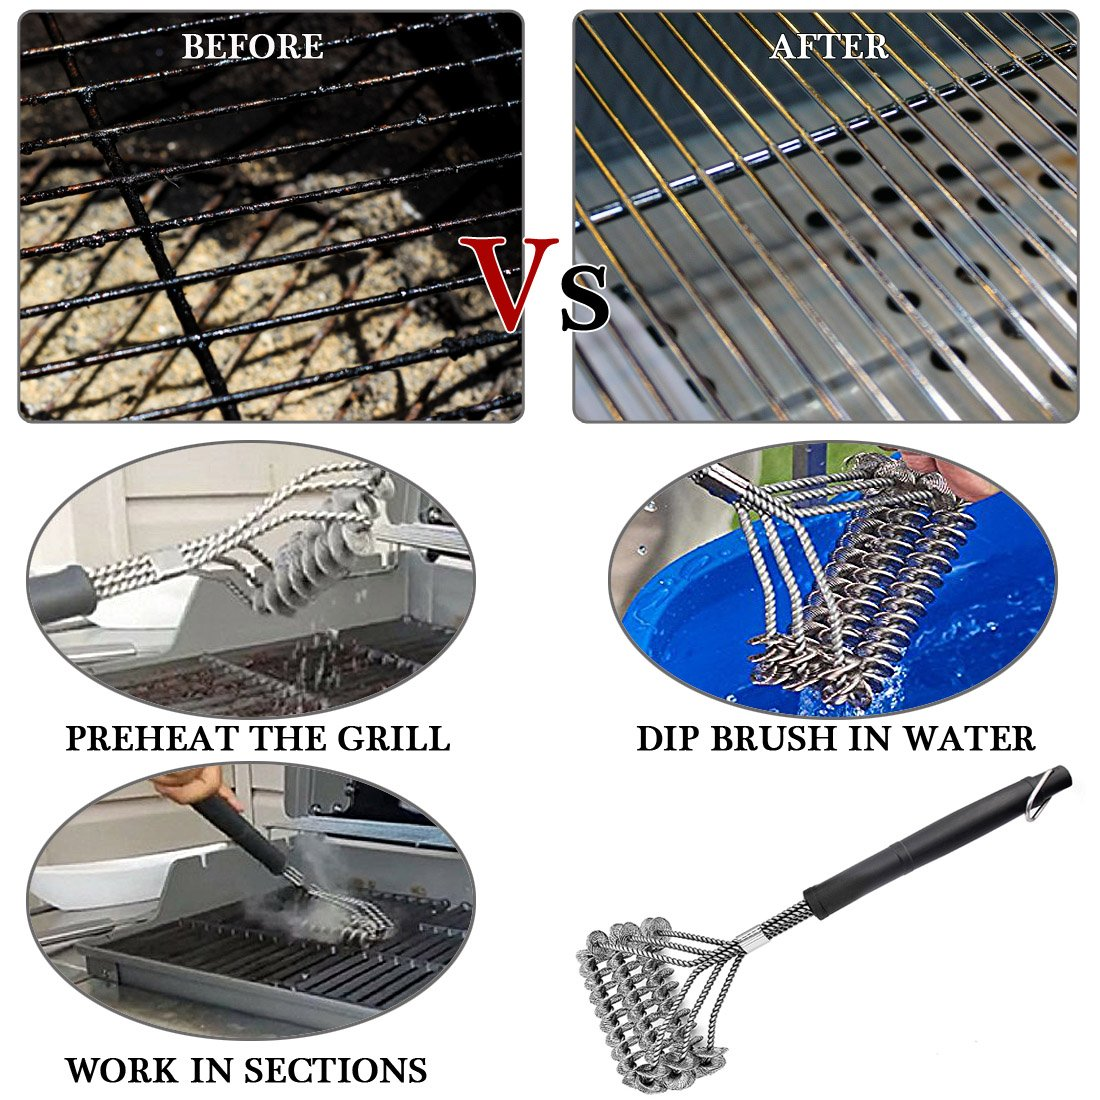 Bristle Free Grill Brush,3-Helix Bristle Free Clean Brush,Food Grade Stainless Steel 316 Barbecue Brush Fits Porcelain,Propane,Electric,Infrared,Iron and Weber Grill Grates,BBQ HaRuion Grill Brush